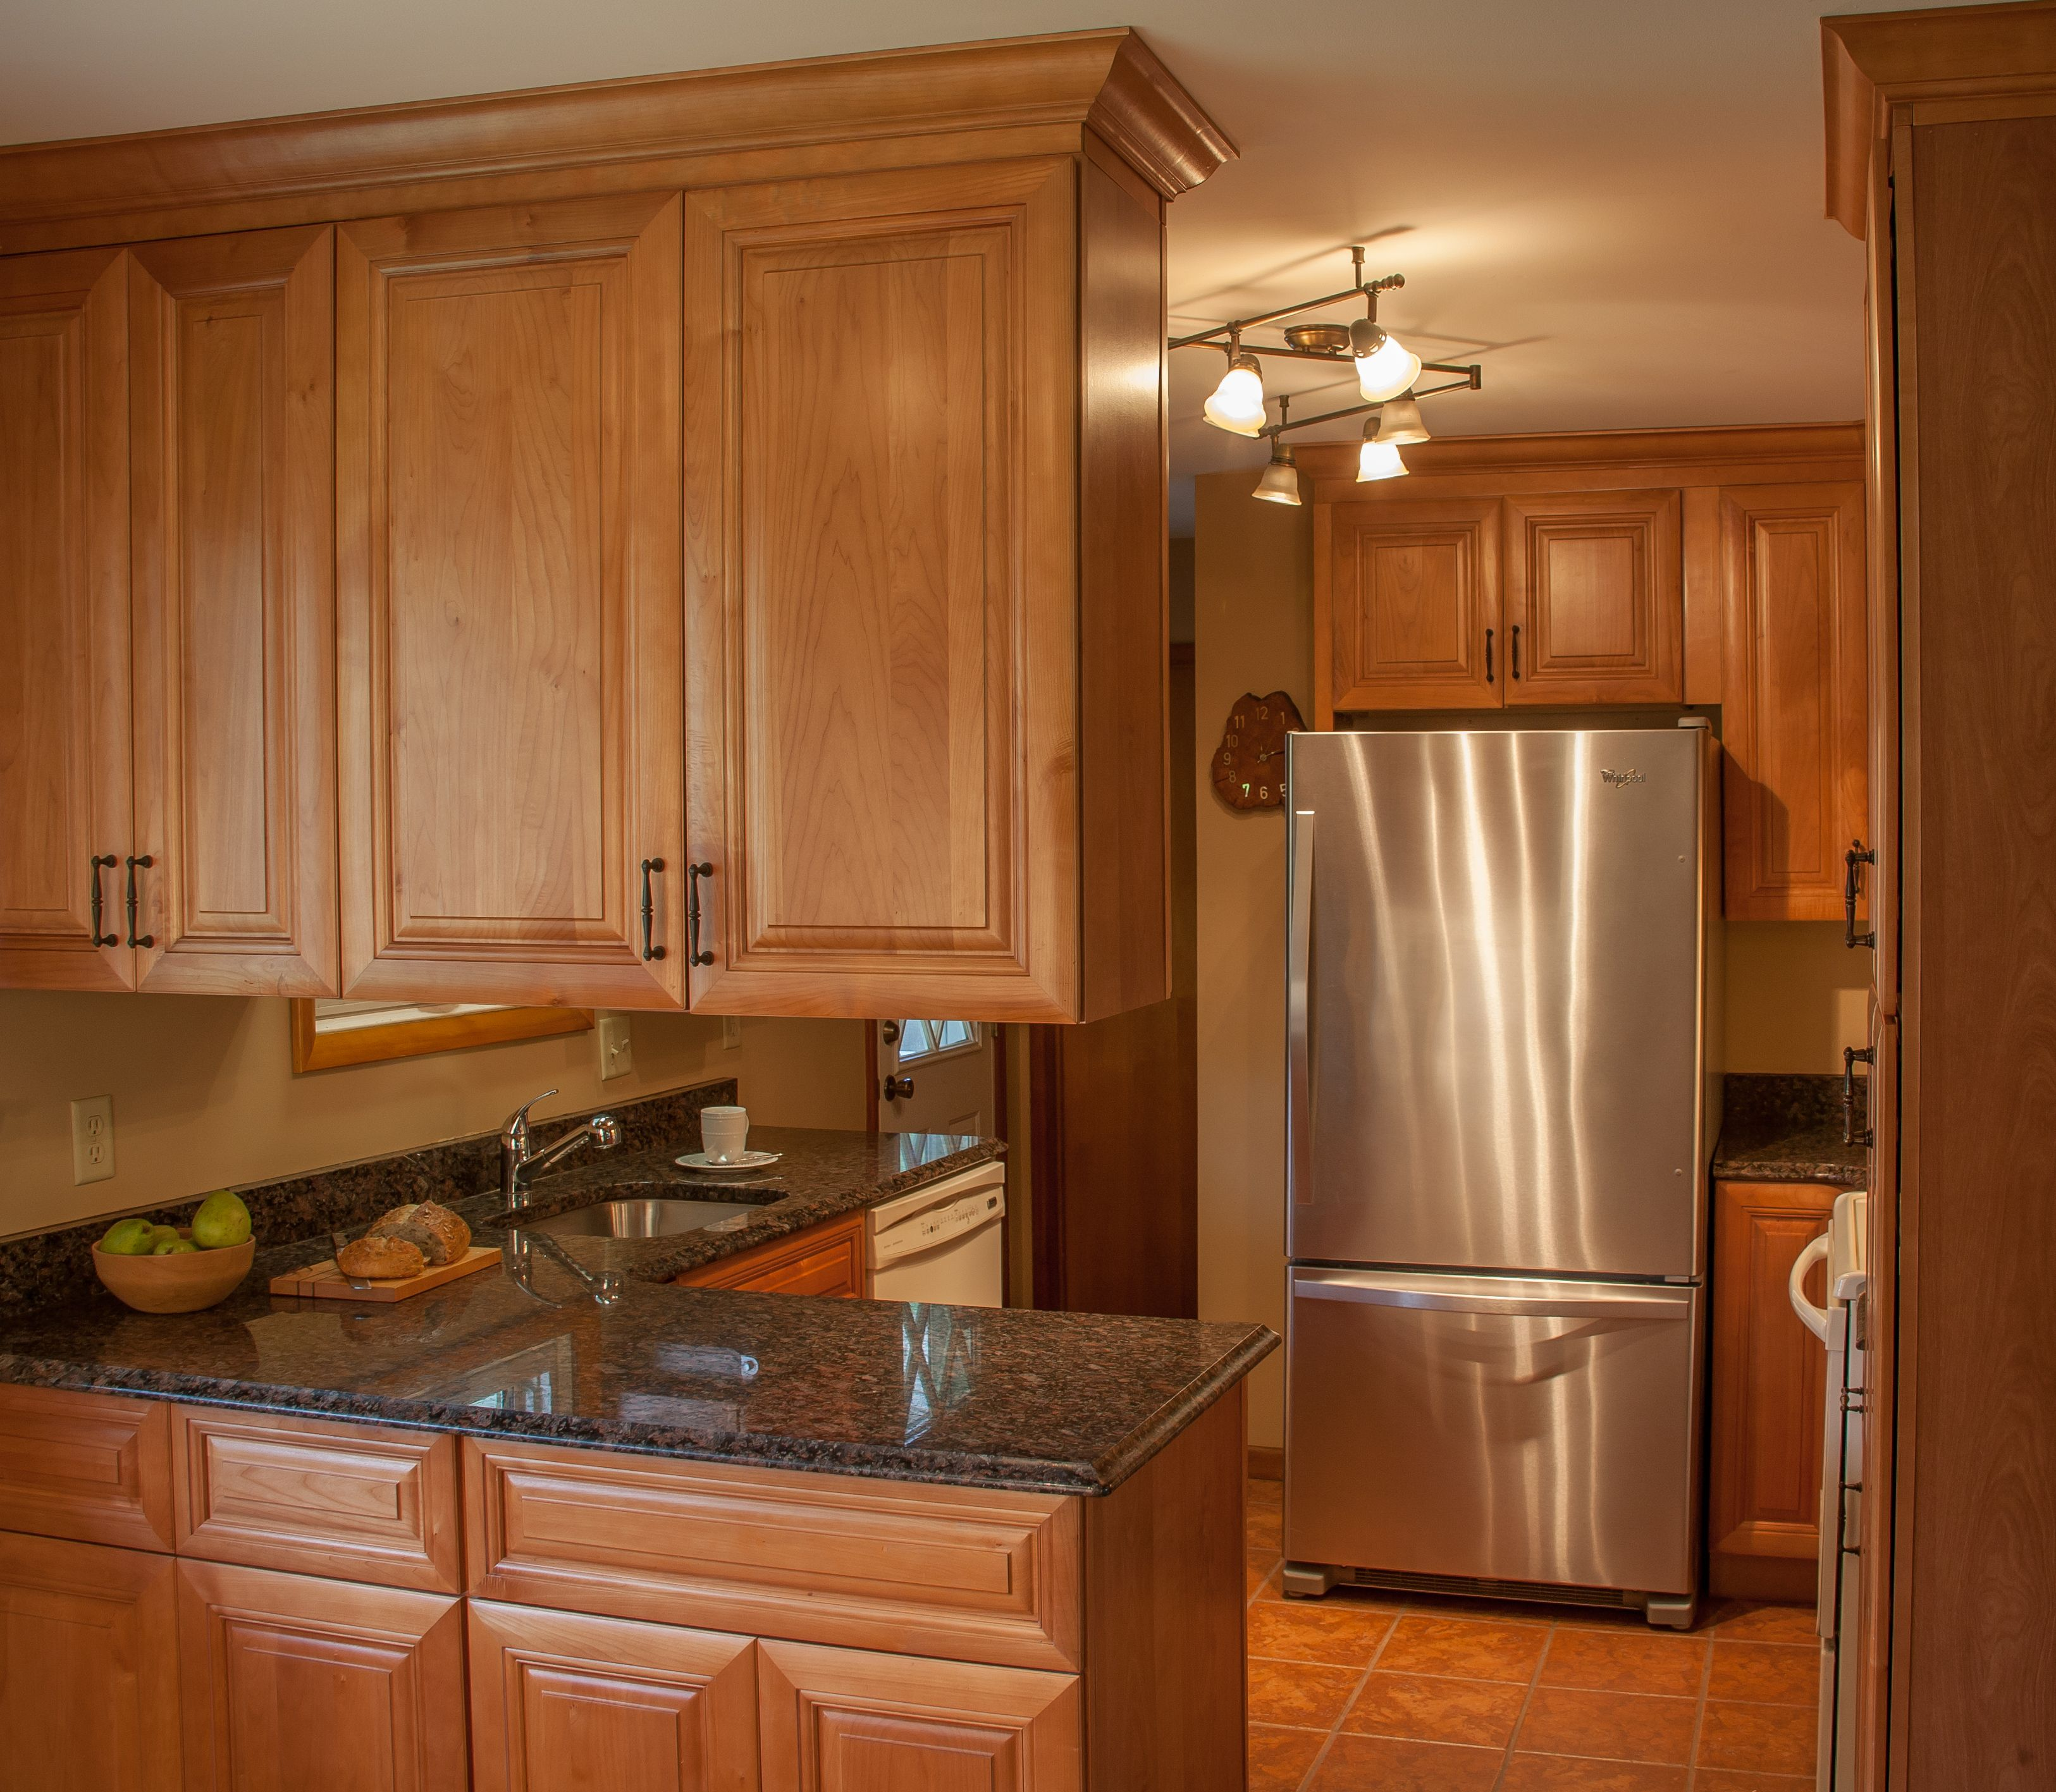 Coffee Brown Granite And Allwood Cabinets